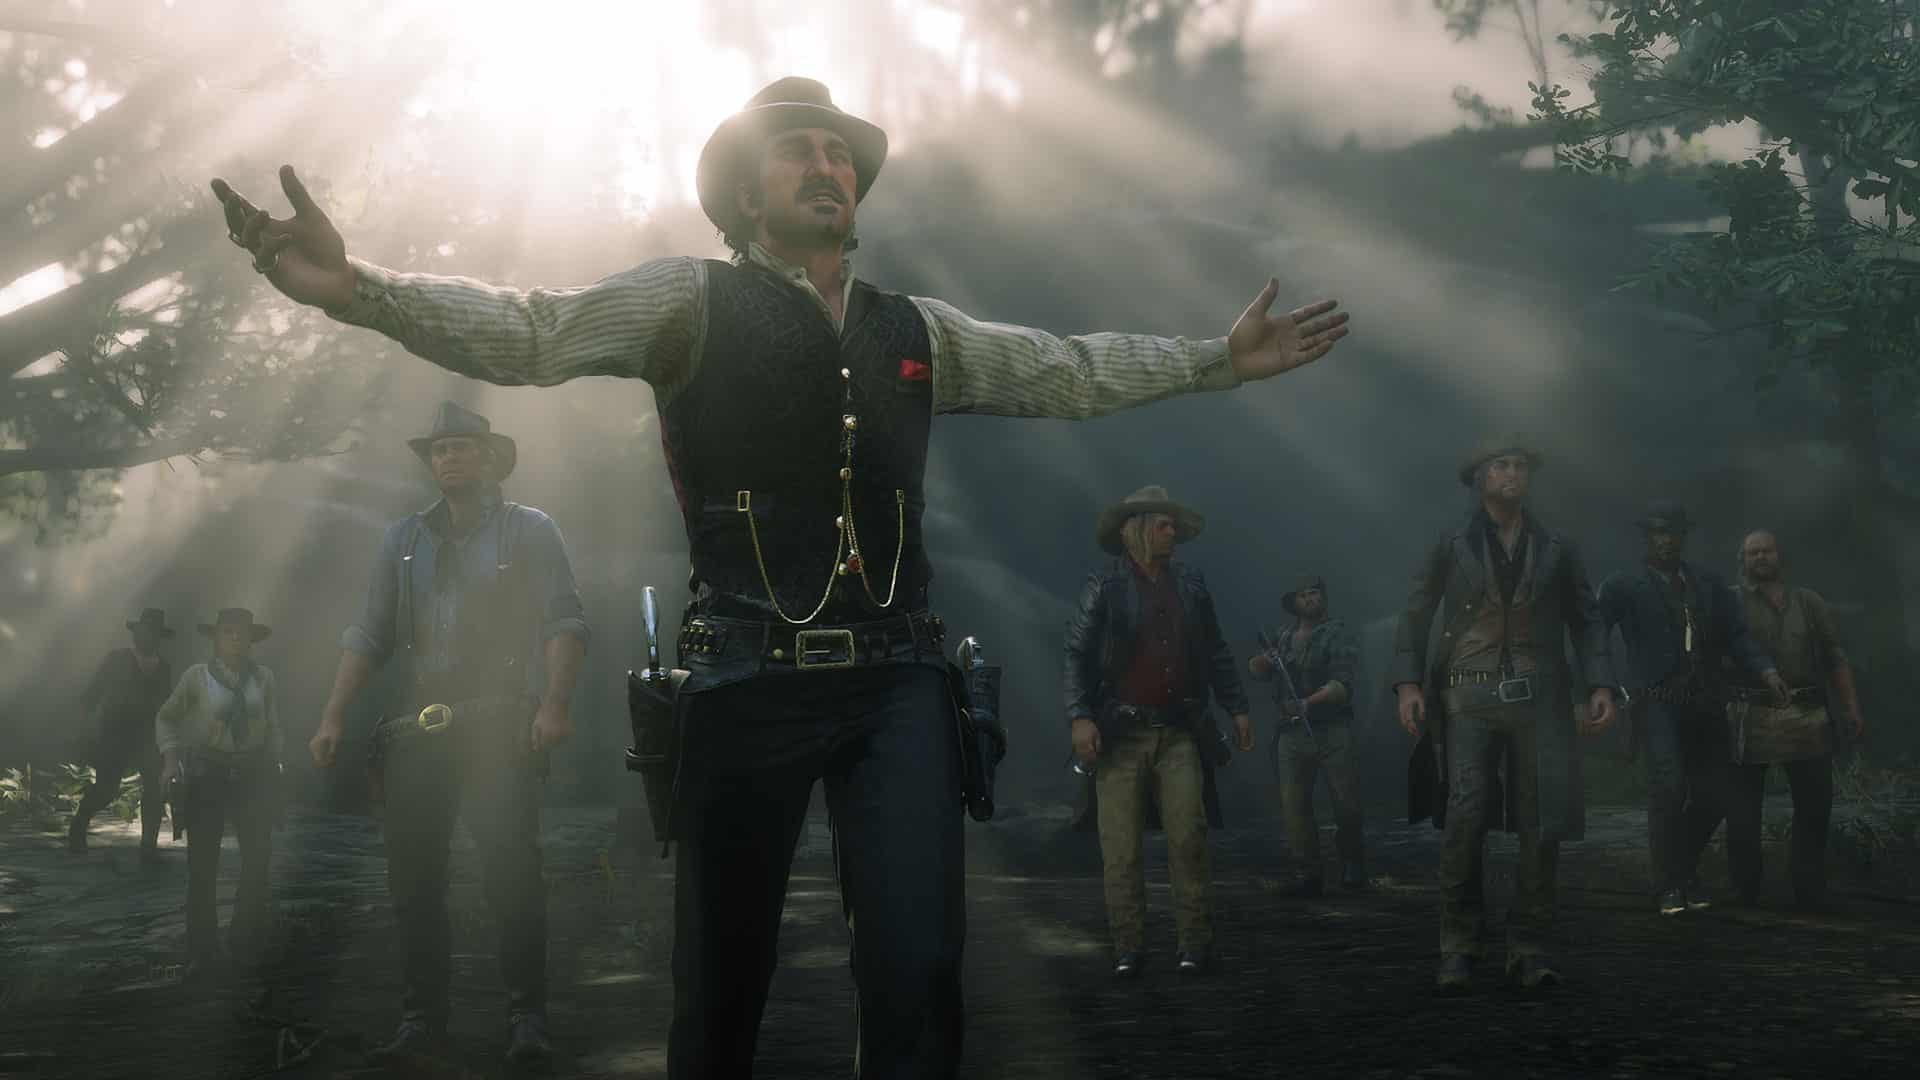 Red Dead Redemption 2 PC RDR2 PC performance issues rockstar games